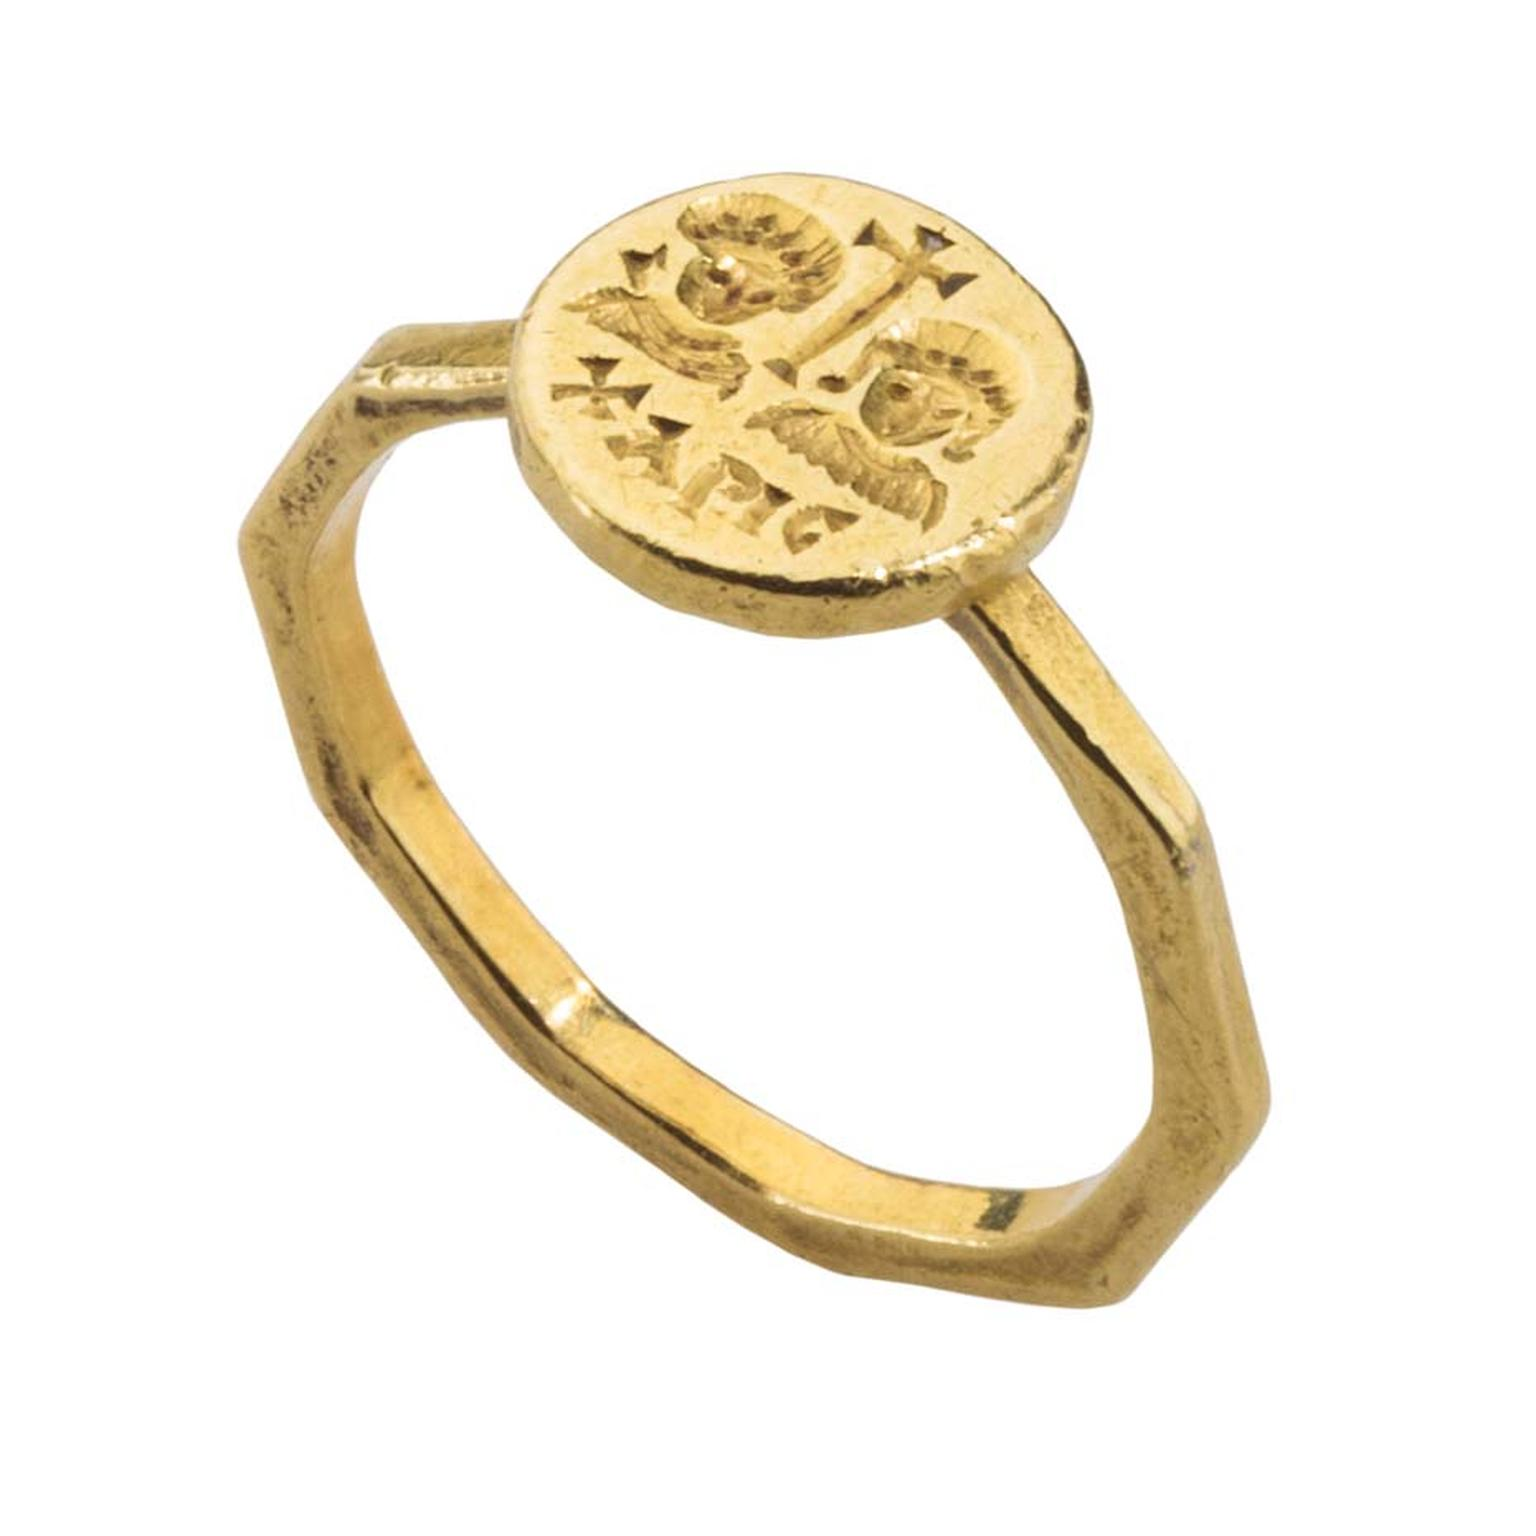 Treasures and Talismans Exhibition_Byzantine marriage ring.jpg